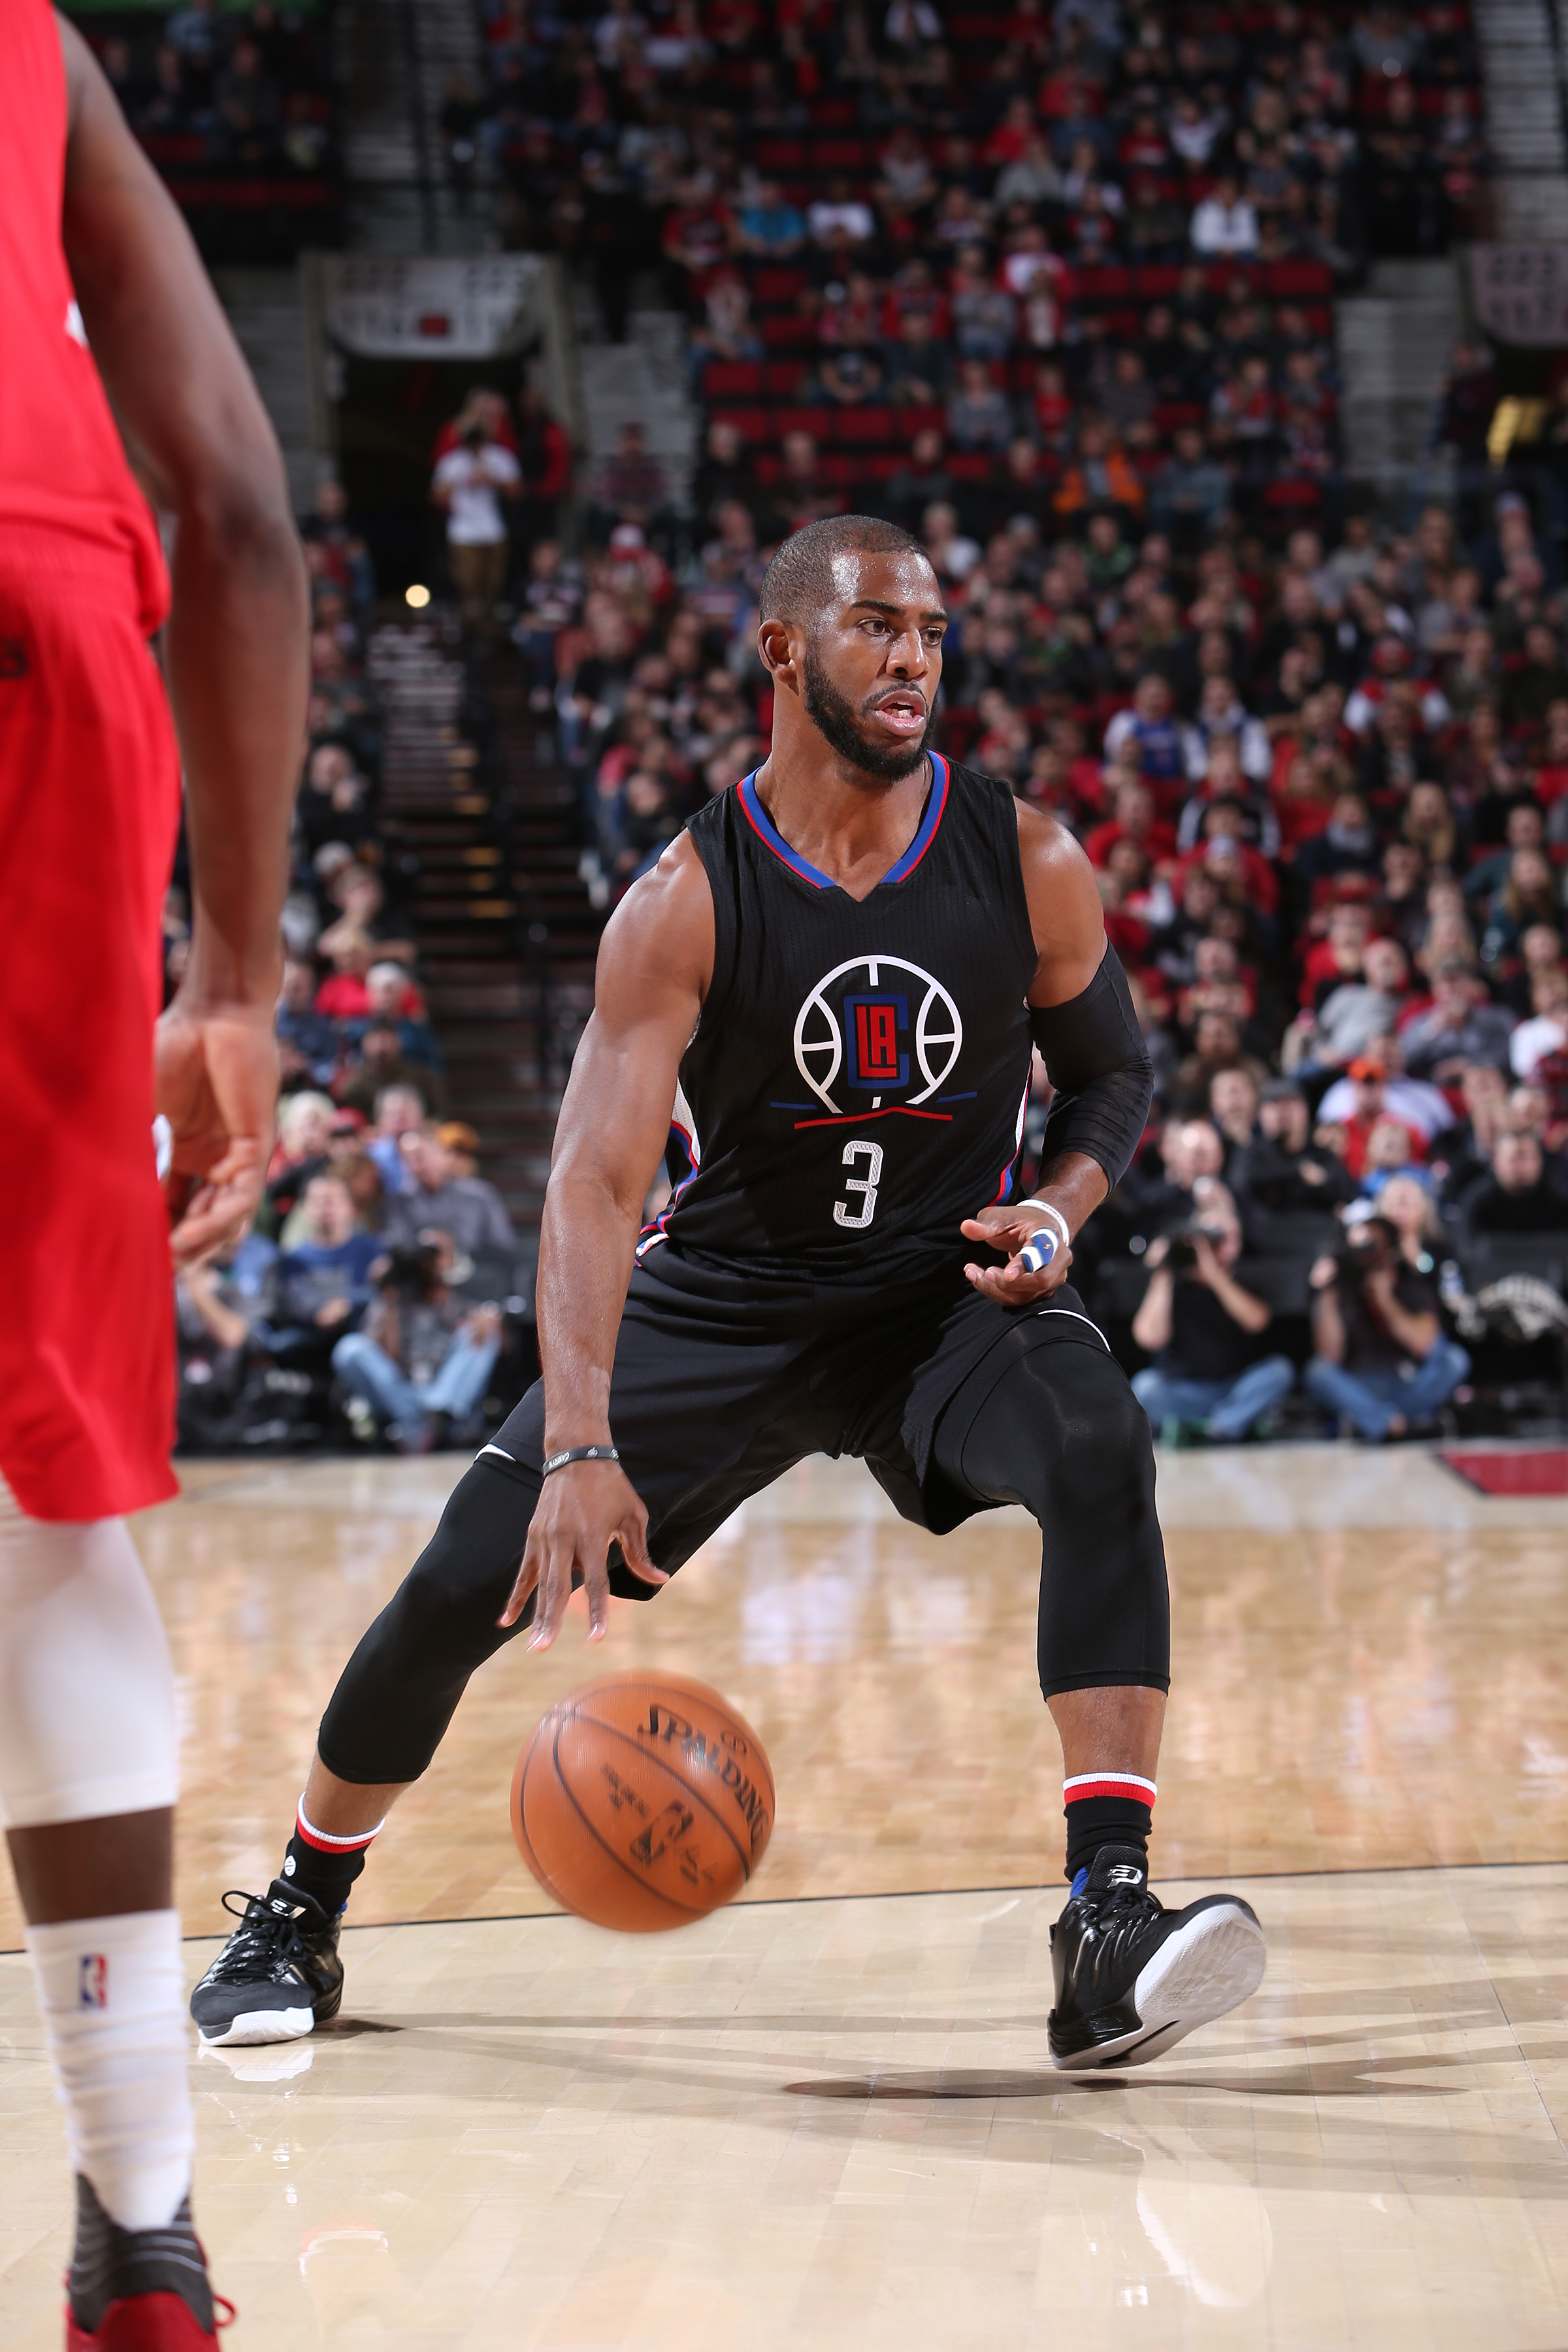 PORTLAND, OR - JANUARY 6: Chris Paul #3 of the Los Angeles Clippers handles the ball during the game against the Portland Trail Blazers on January 6, 2016 at the Moda Center in Portland, Oregon. (Photo by Sam Forencich/NBAE via Getty Images)